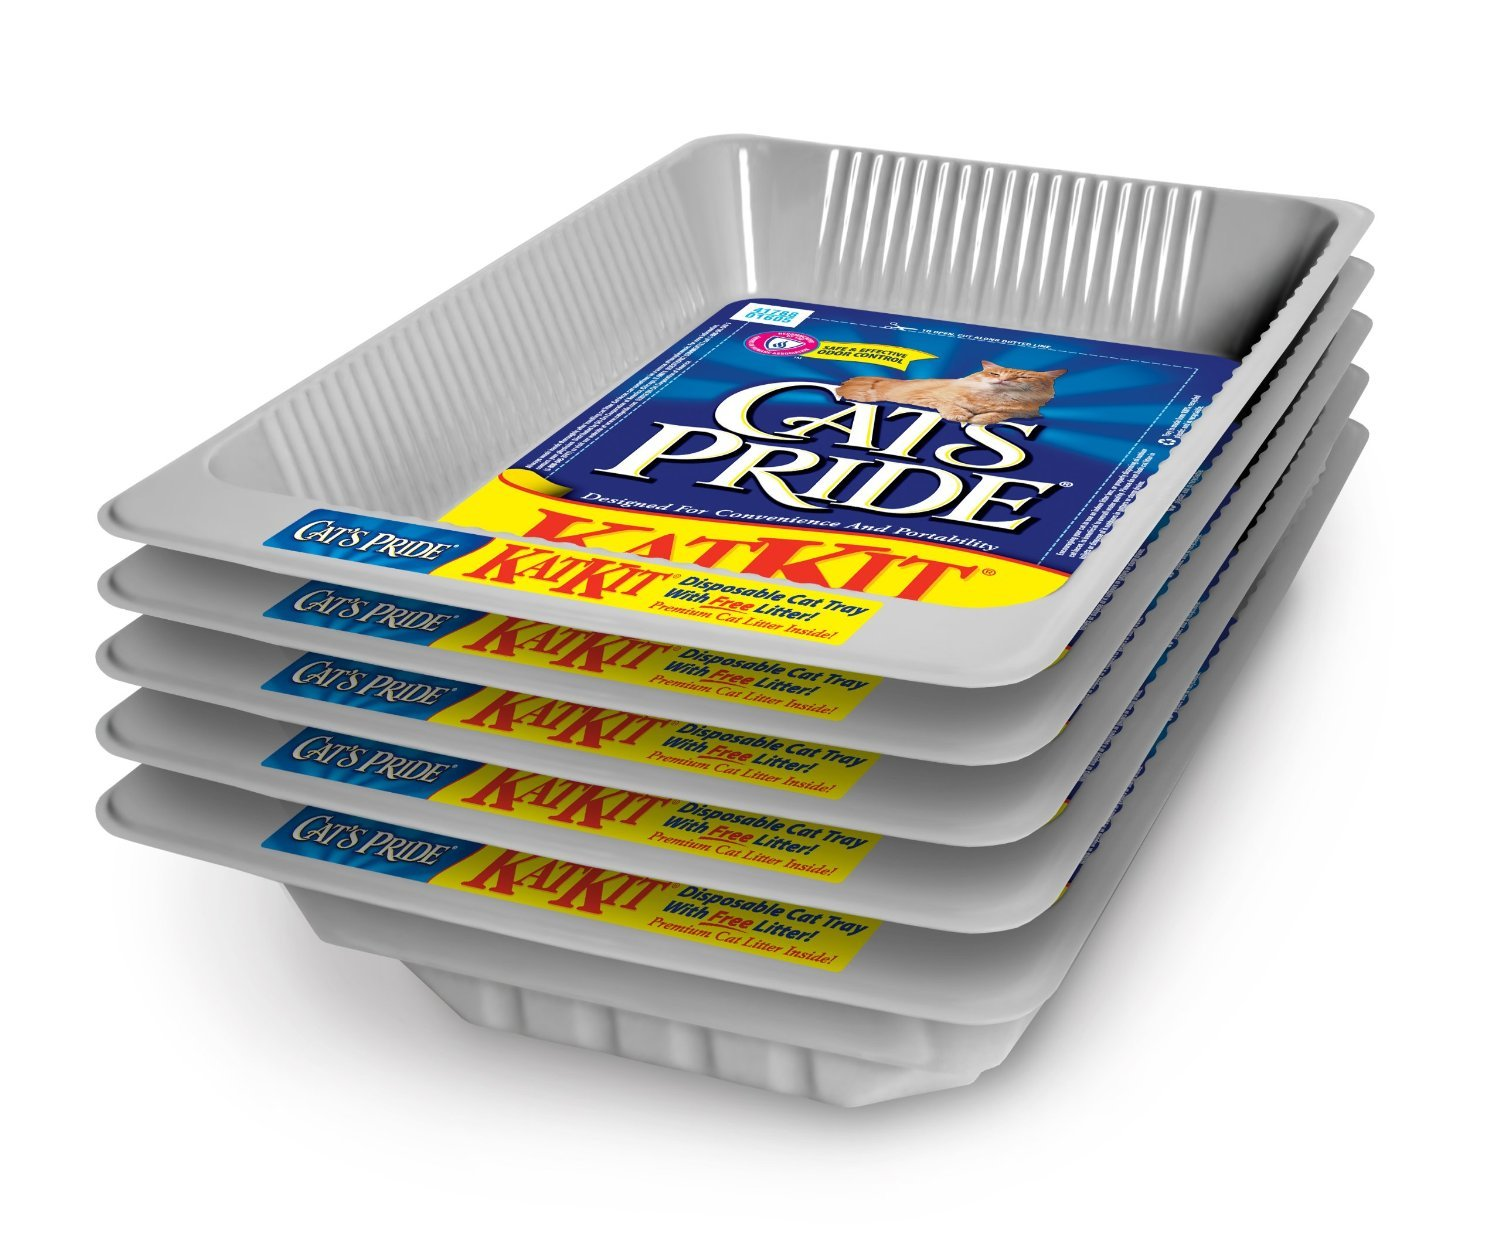 Cat's Pride, Disposable Litter Pan, Includes Pan & Litter All In One (Pack of 5) by Cat's Pride (Image #1)